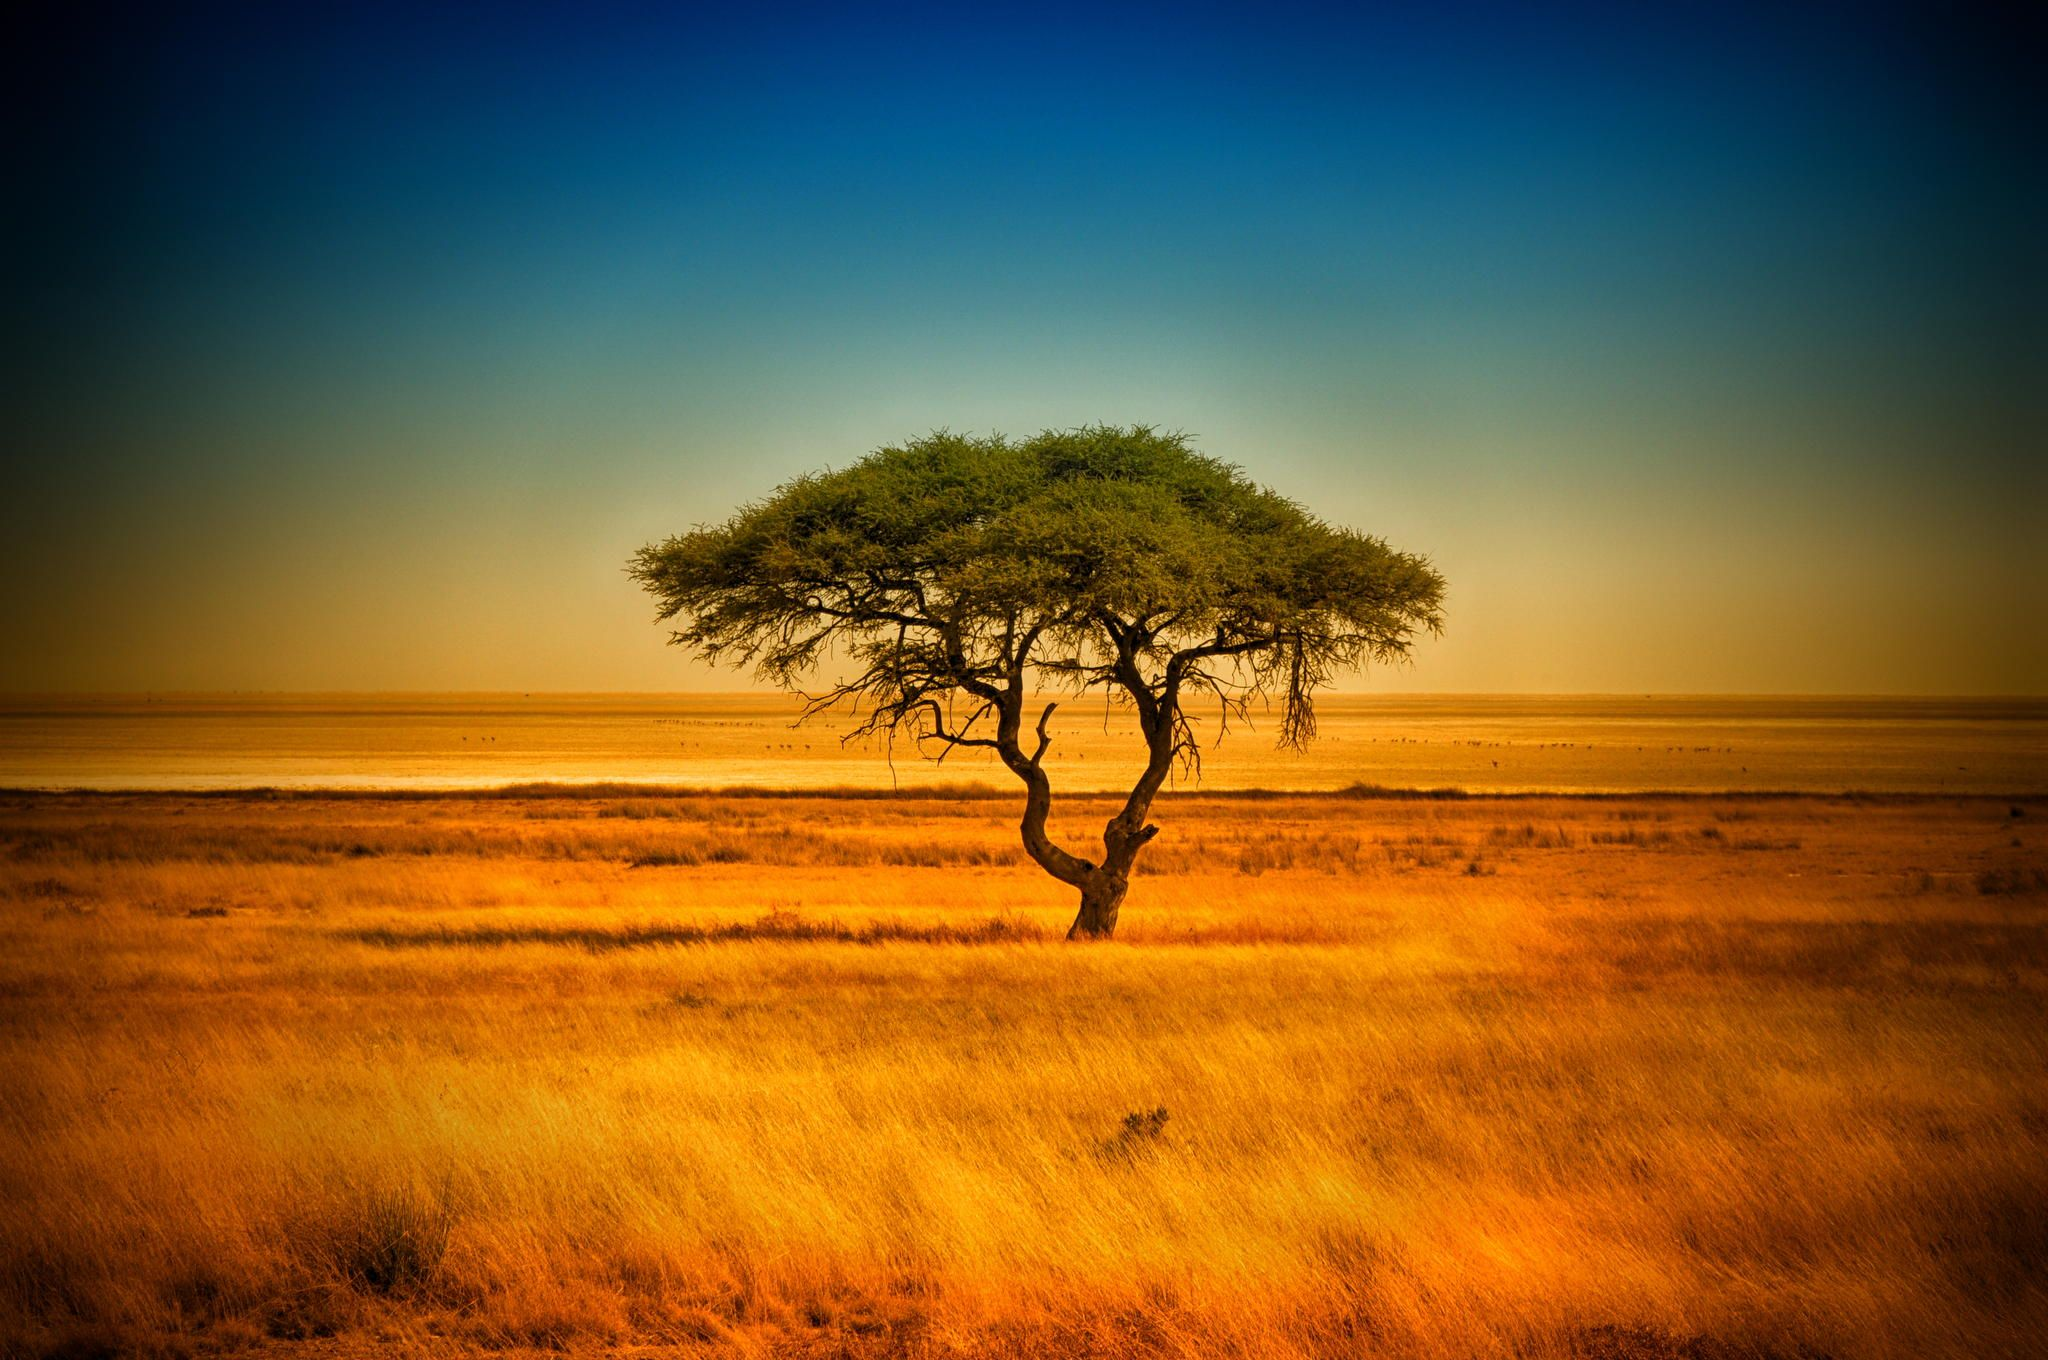 Umbrella Thorn Acacia Tree Etosha Park Savannah Namibia By